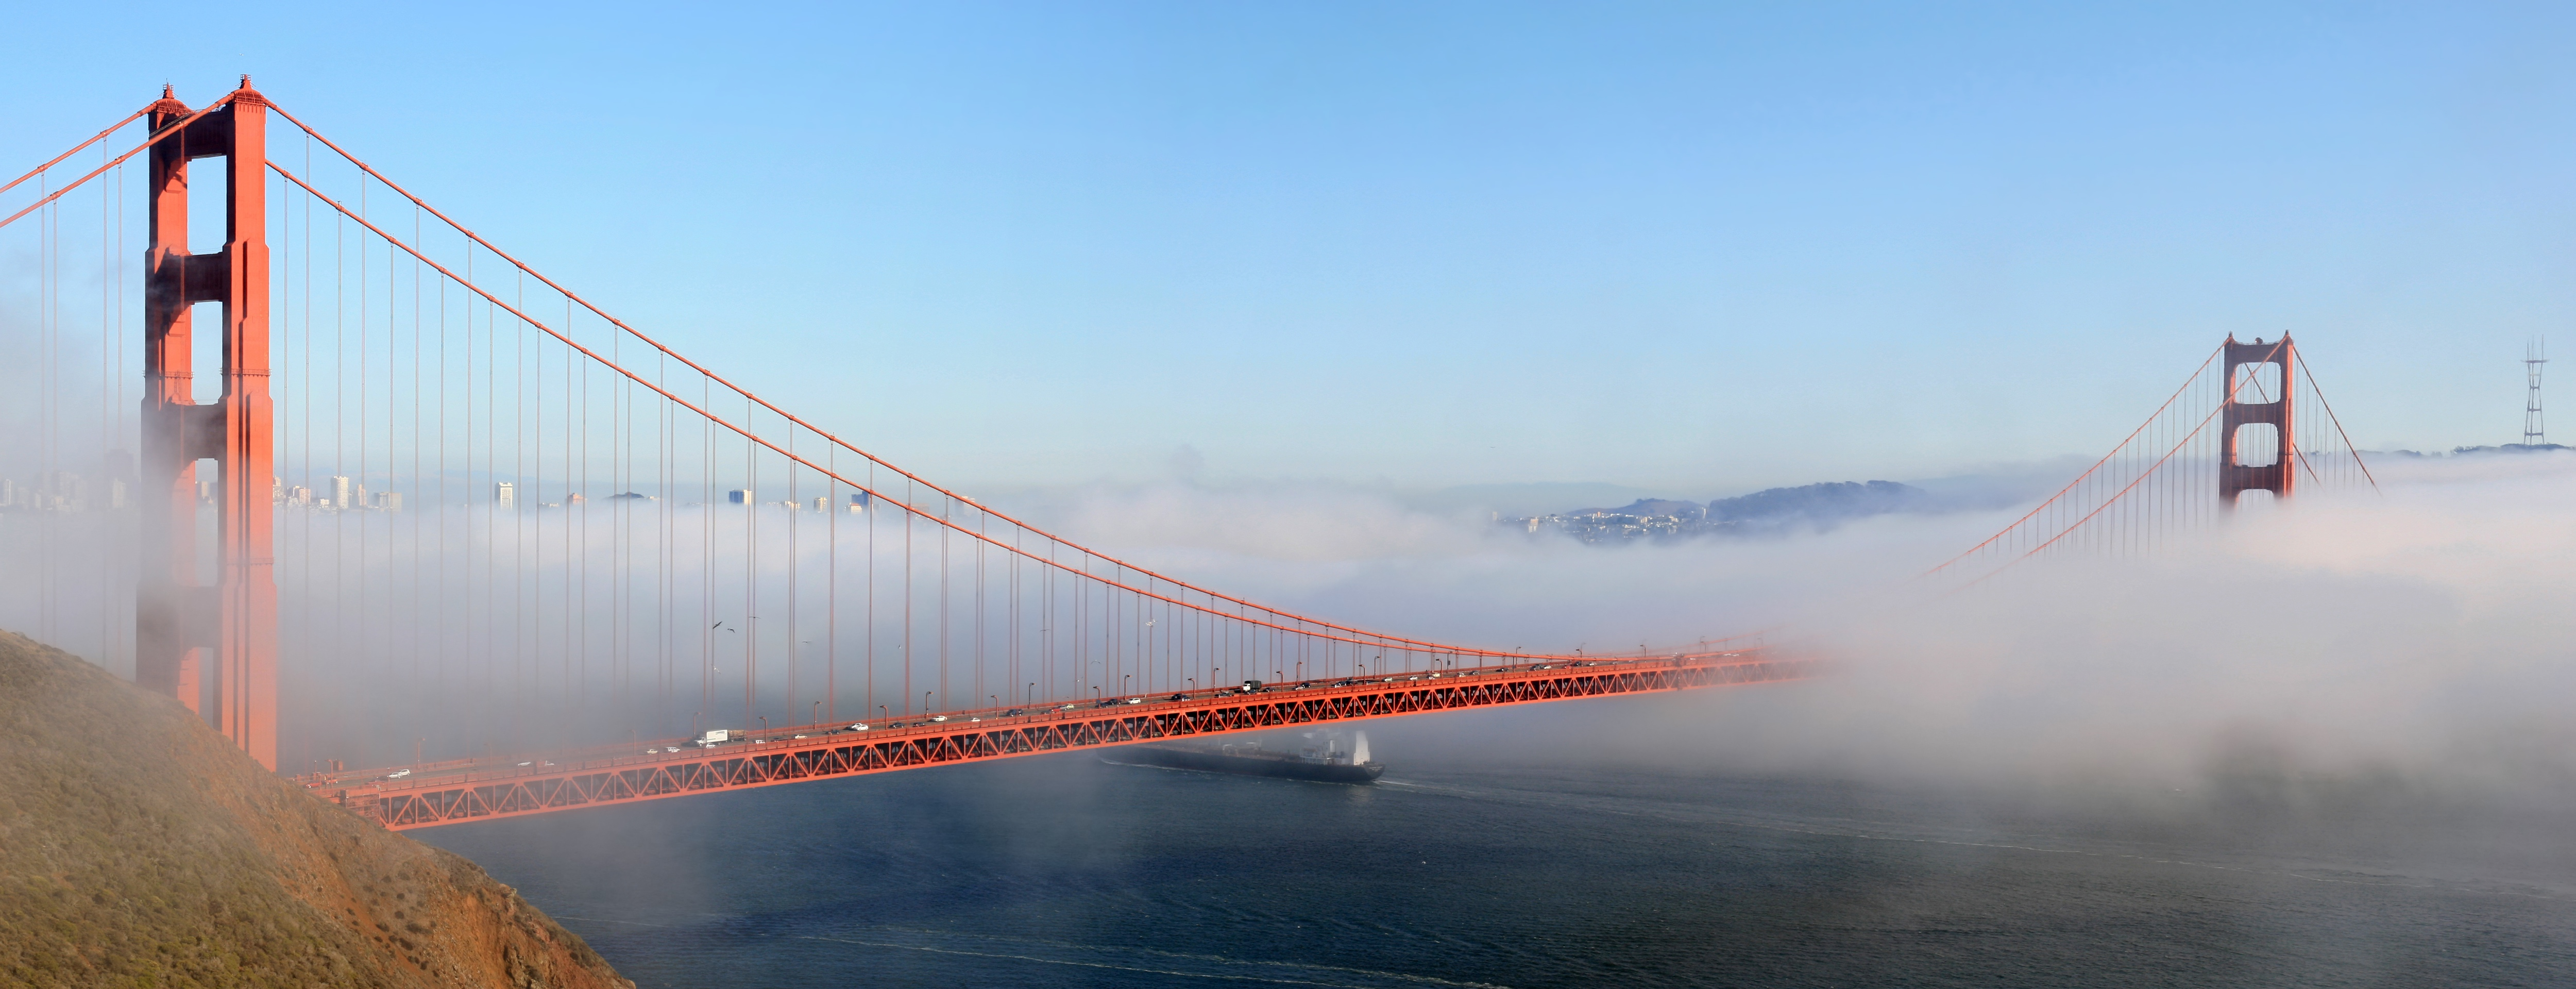 7 Great Movie Moments Featuring The Golden Gate Bridge Diagram Of